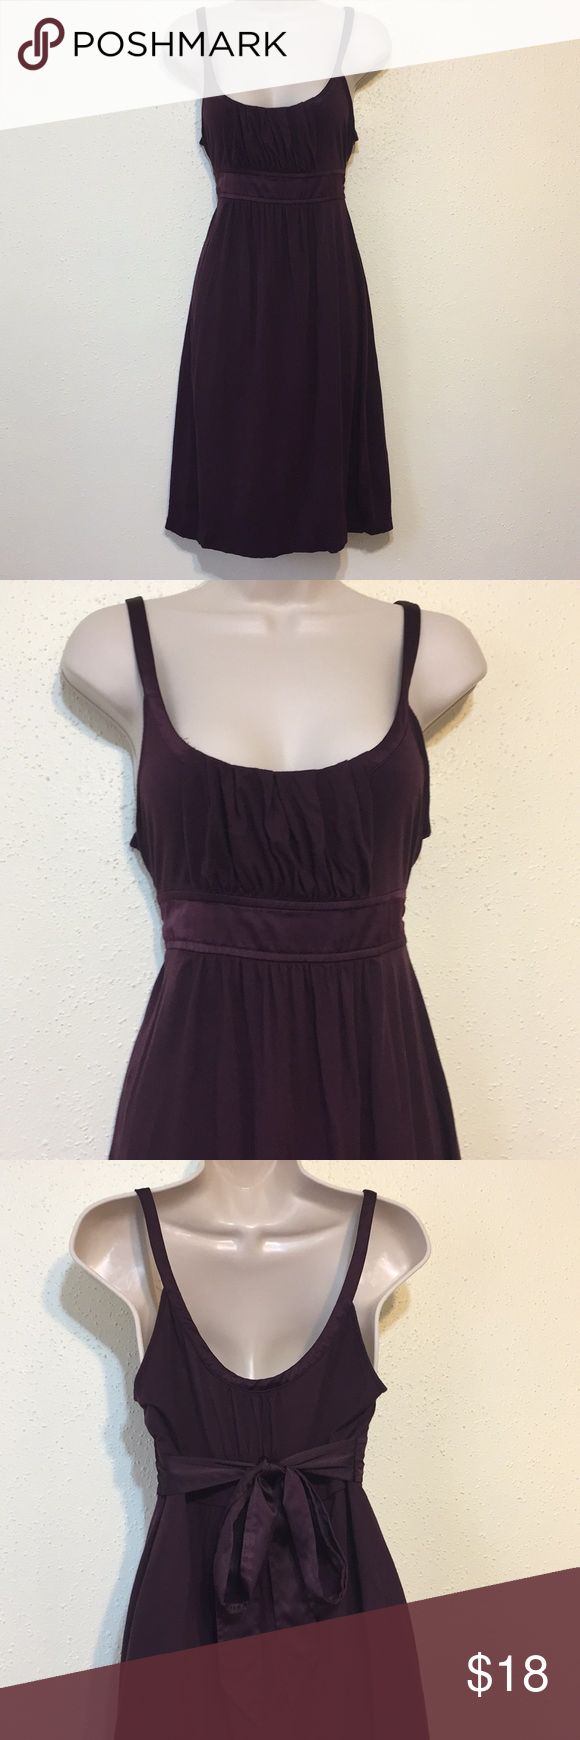 American Eagle Outfitters Purple Cami Dress Deep purple knee length dress with waist tie. Gorgeous silk sash around upper waist. Silk line straps and trim around top. Body 60% Modal 40% Cotton. Gently worn with light piling. American Eagle Outfitters Dresses Midi #americaneagleoutfitters